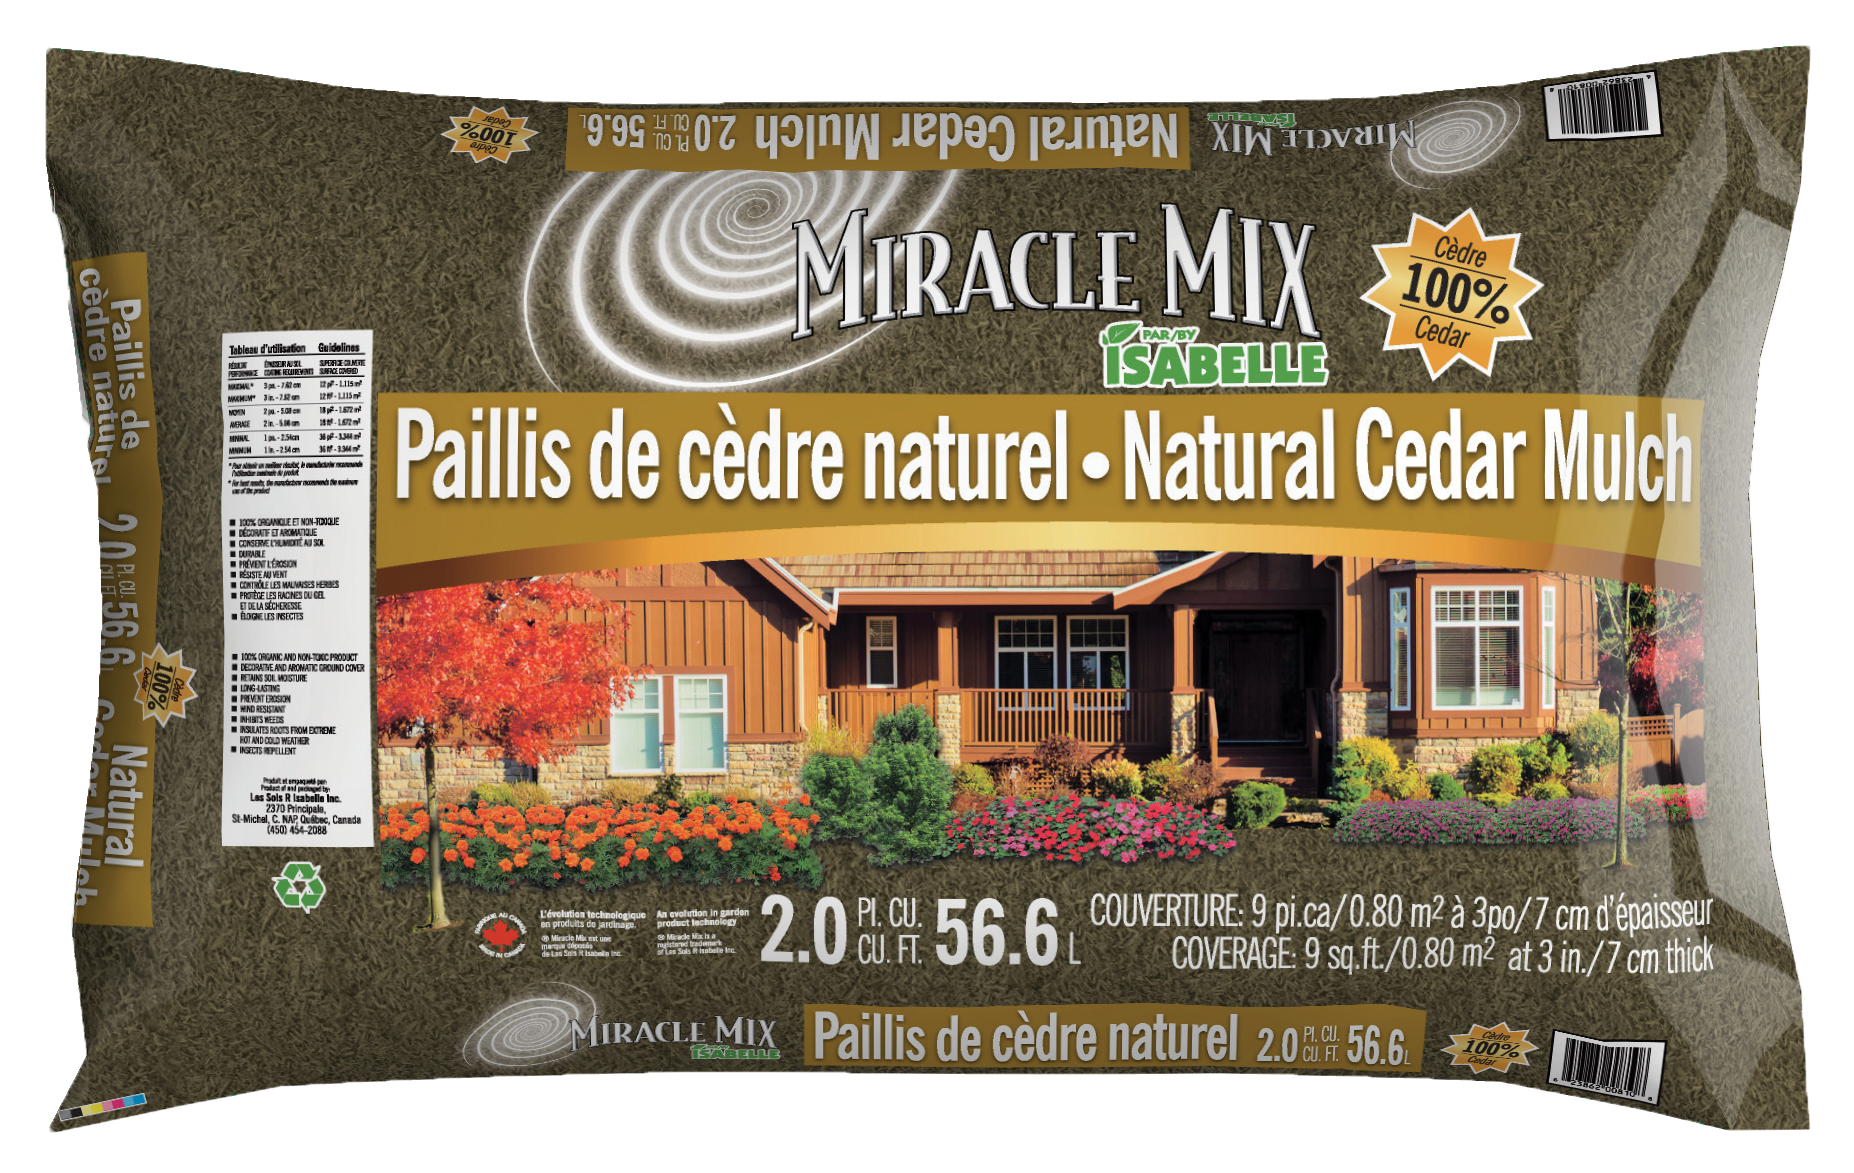 3DMiracleMixMulchnaturel2PC